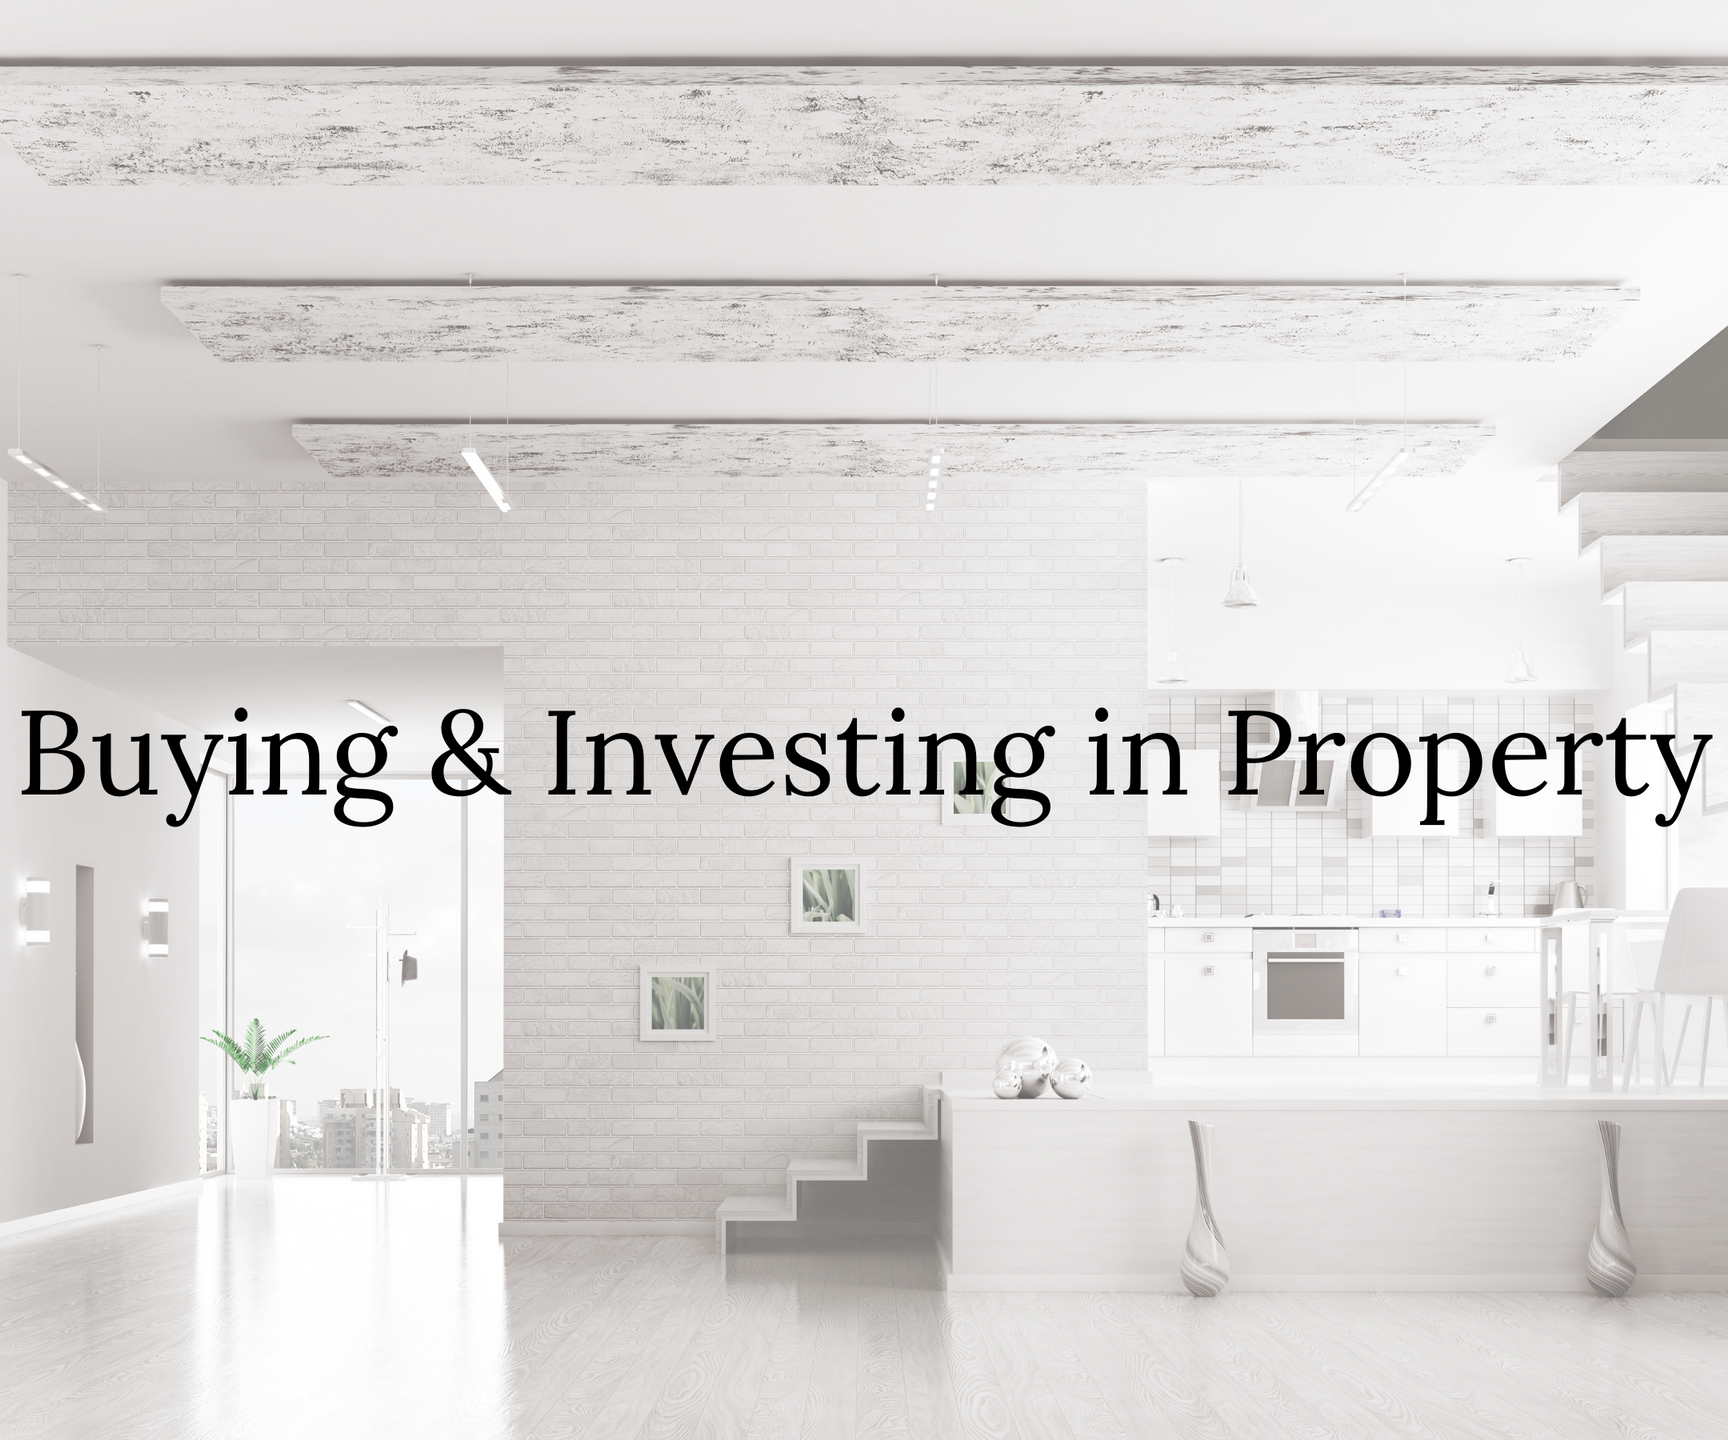 Buying & Investing in Property